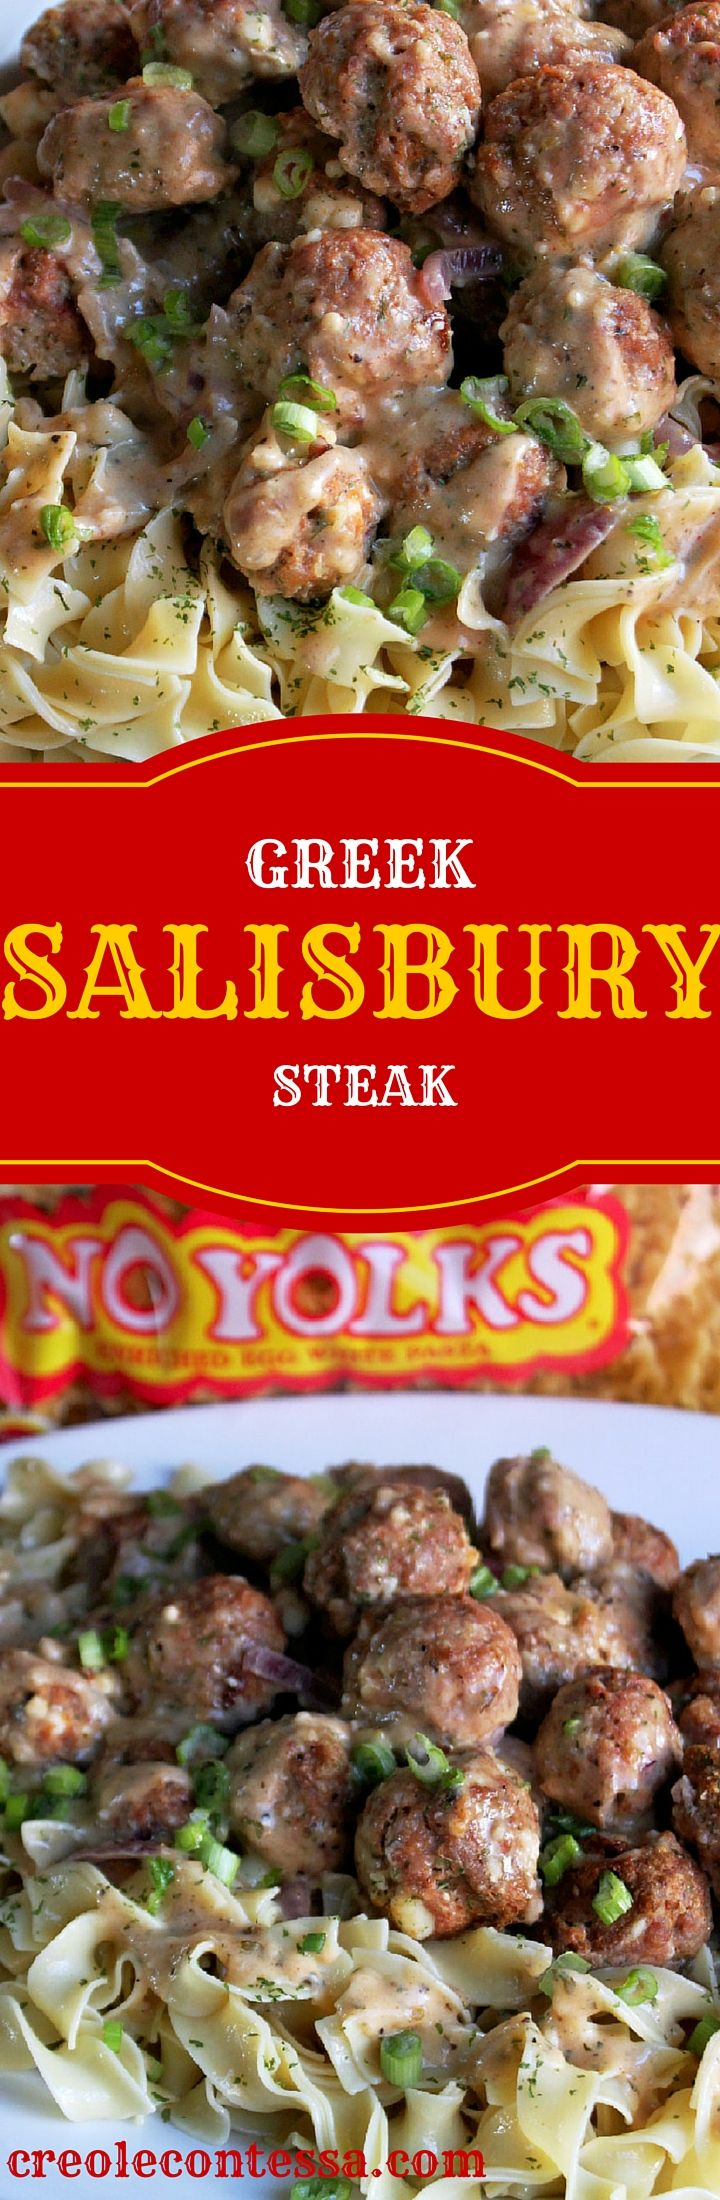 Greek Salisbury Steak Meatballs with No Yolks® Noodles-Creole Contessa  #onlynoyolks  #AD